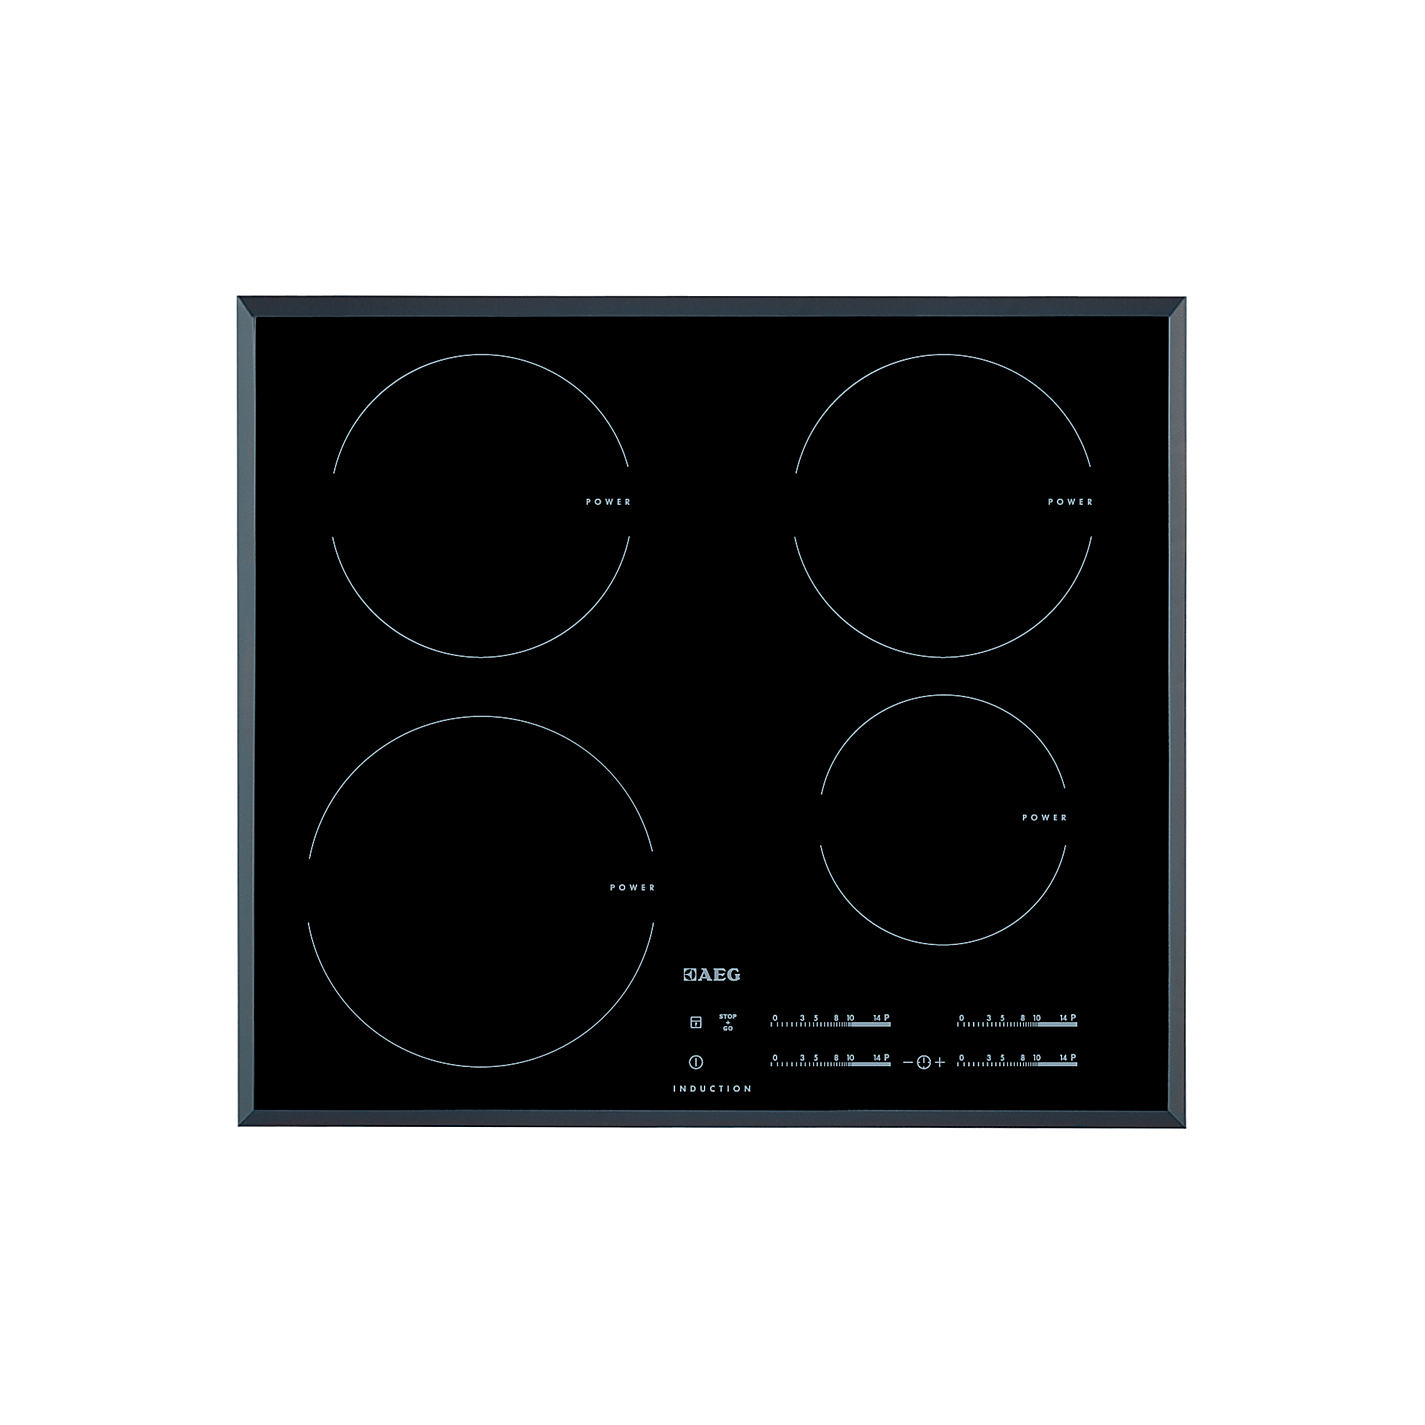 232238933?$prod_exlrg$ buy aeg hk654200fb induction hob, black john lewis aeg induction hob wiring diagram at gsmx.co